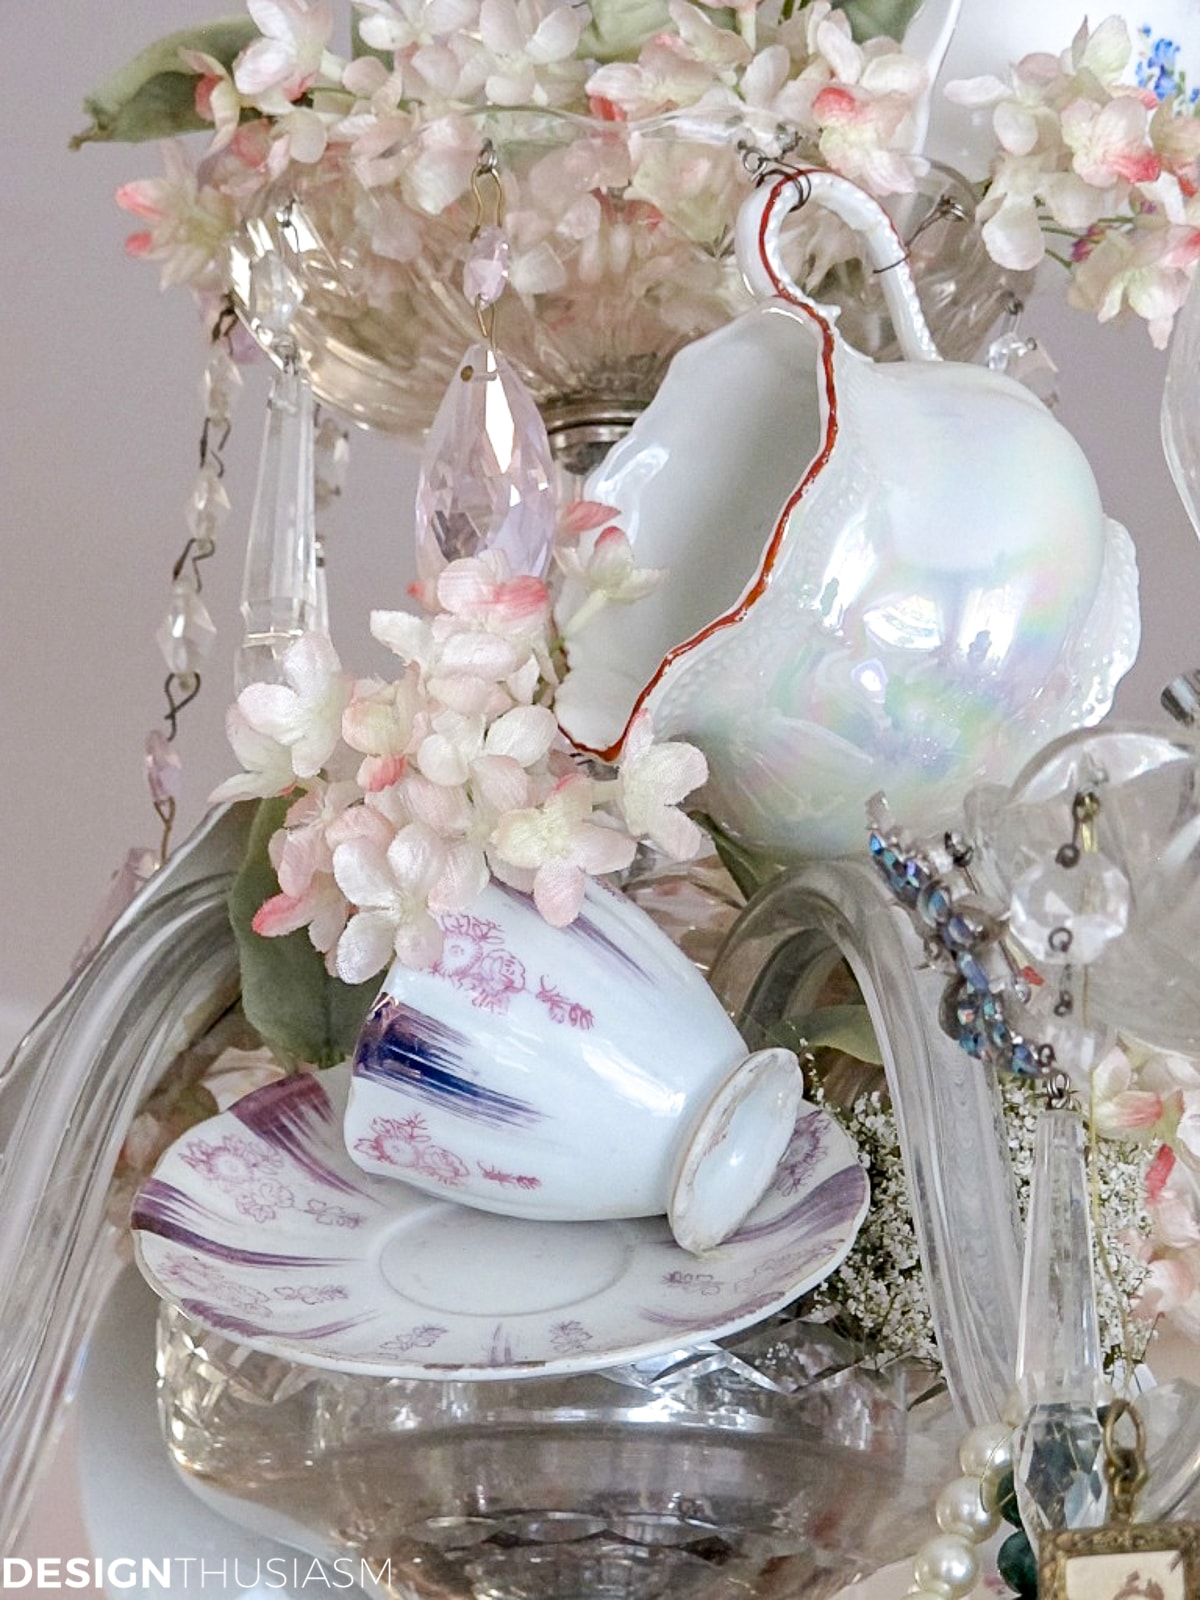 vintage teacups and saucers on a chandelier